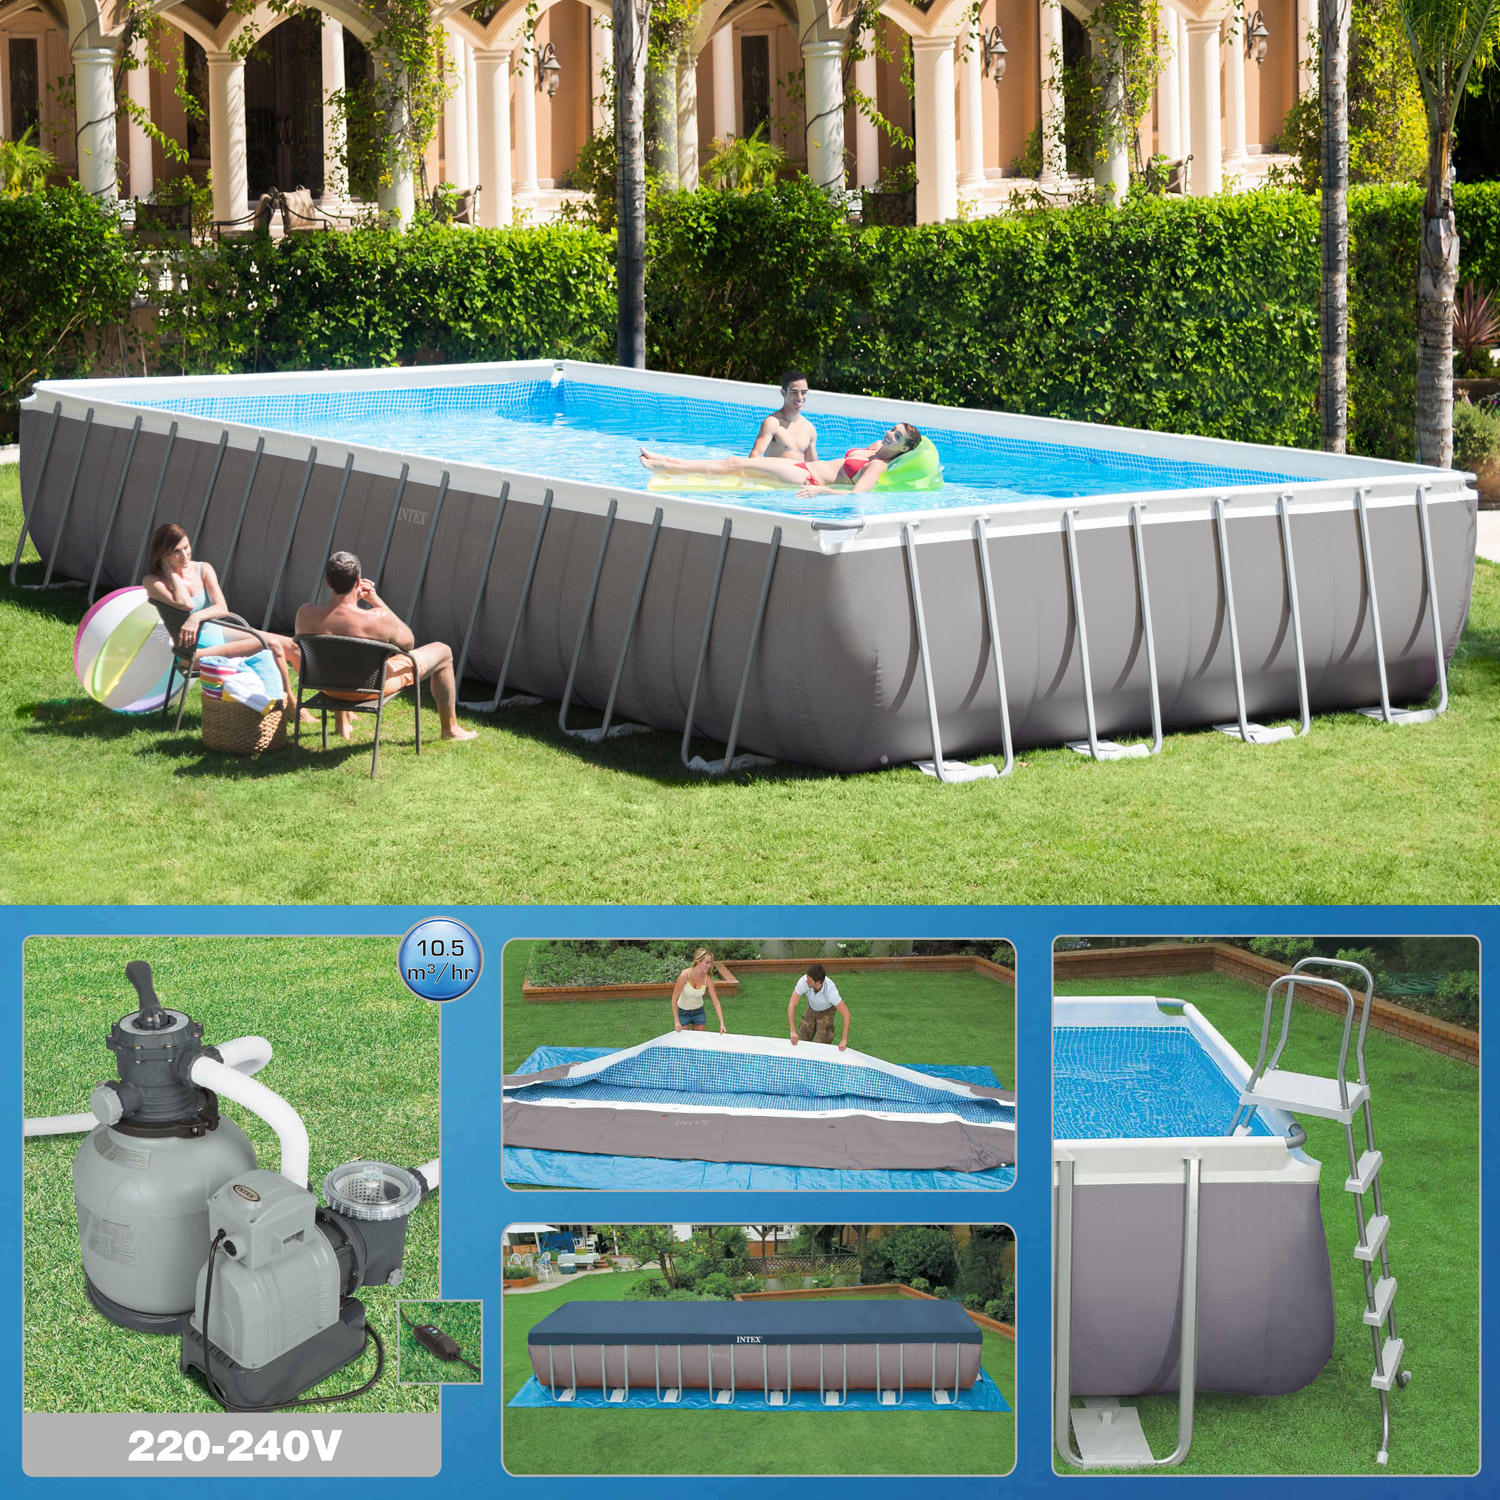 intex 975 x 488 x 132cm swimming pool rechteck stahlwand frame schwimmbad 26372 ebay. Black Bedroom Furniture Sets. Home Design Ideas